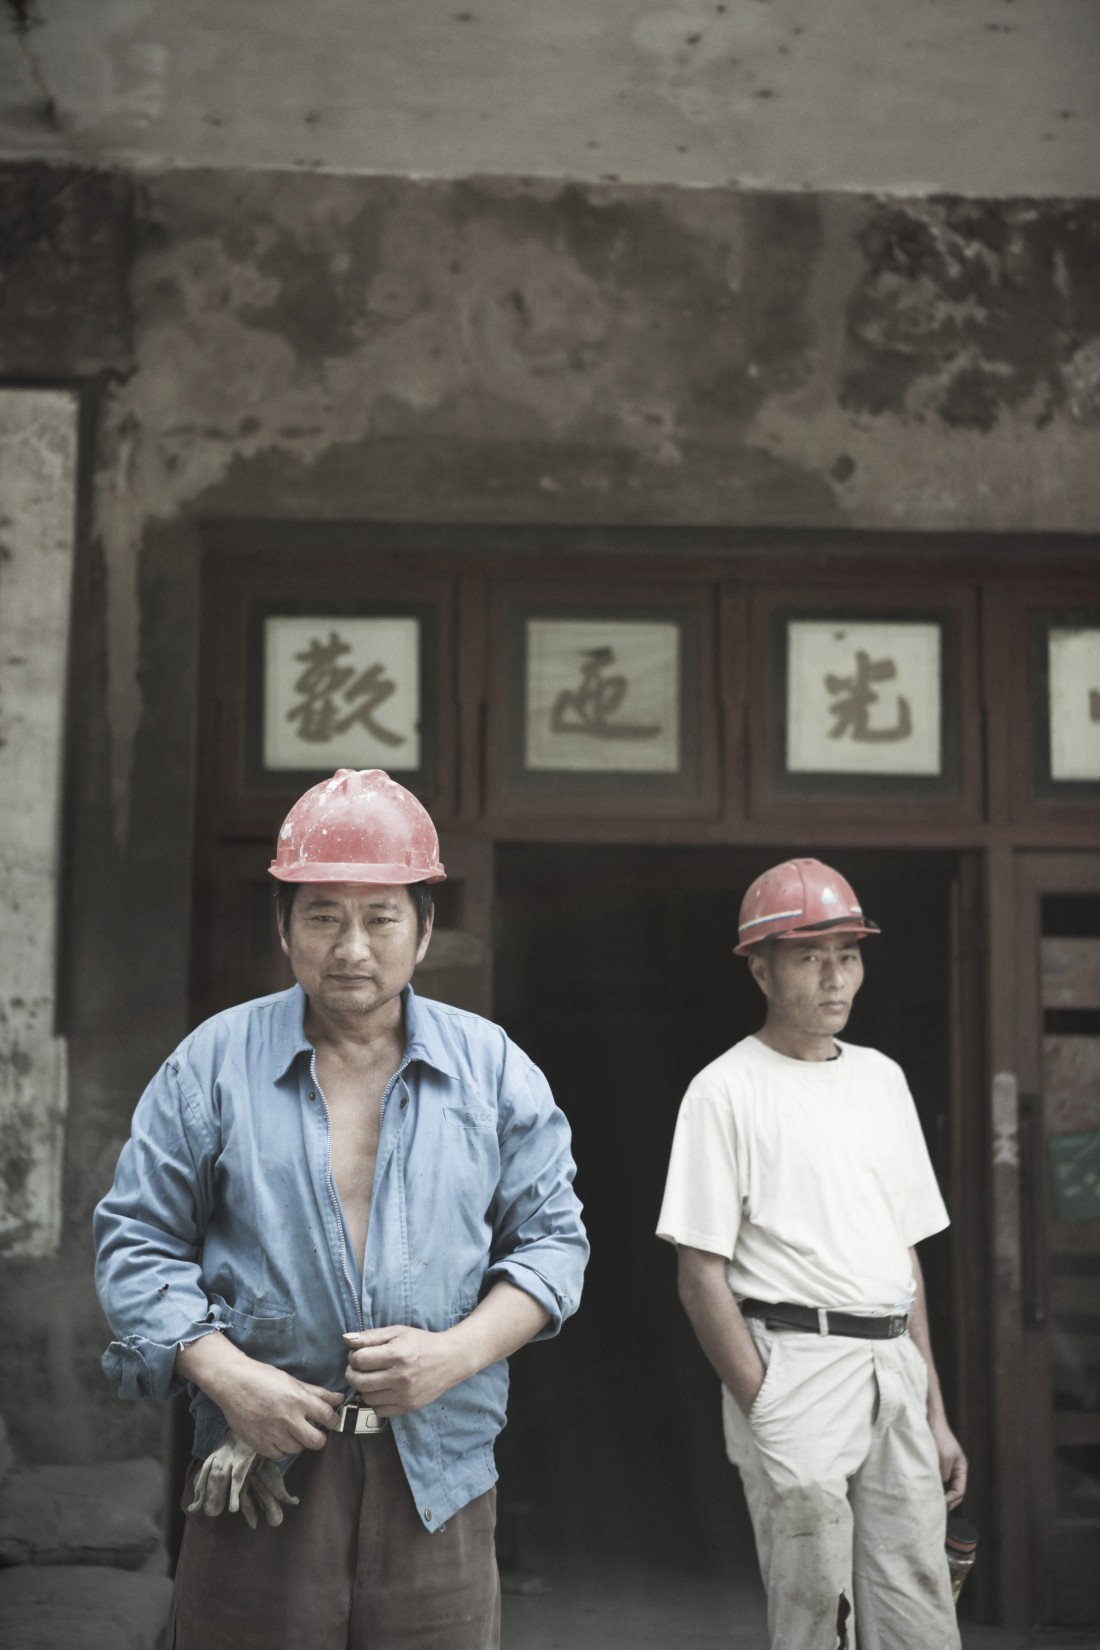 Rural pudong construction duo